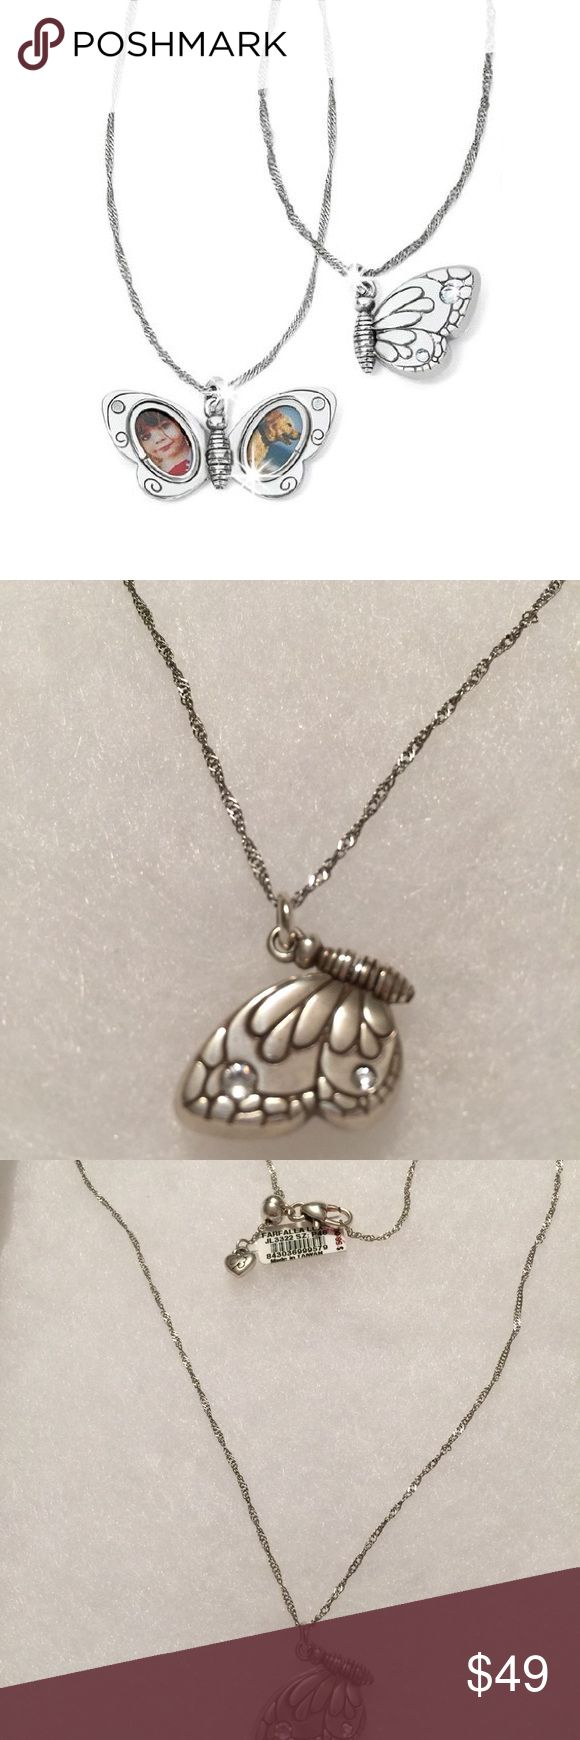 """NWT Brighton Silver Butterfly Locket Adorable! This is a brand new with tags, genuine Brighton necklace in silver! A beautiful signature butterfly that, when opened, is a locket! Chain can adjust to 19"""" make shorter or longer. Adorned with genuine Swarovski😊 Brighton Jewelry Necklaces"""